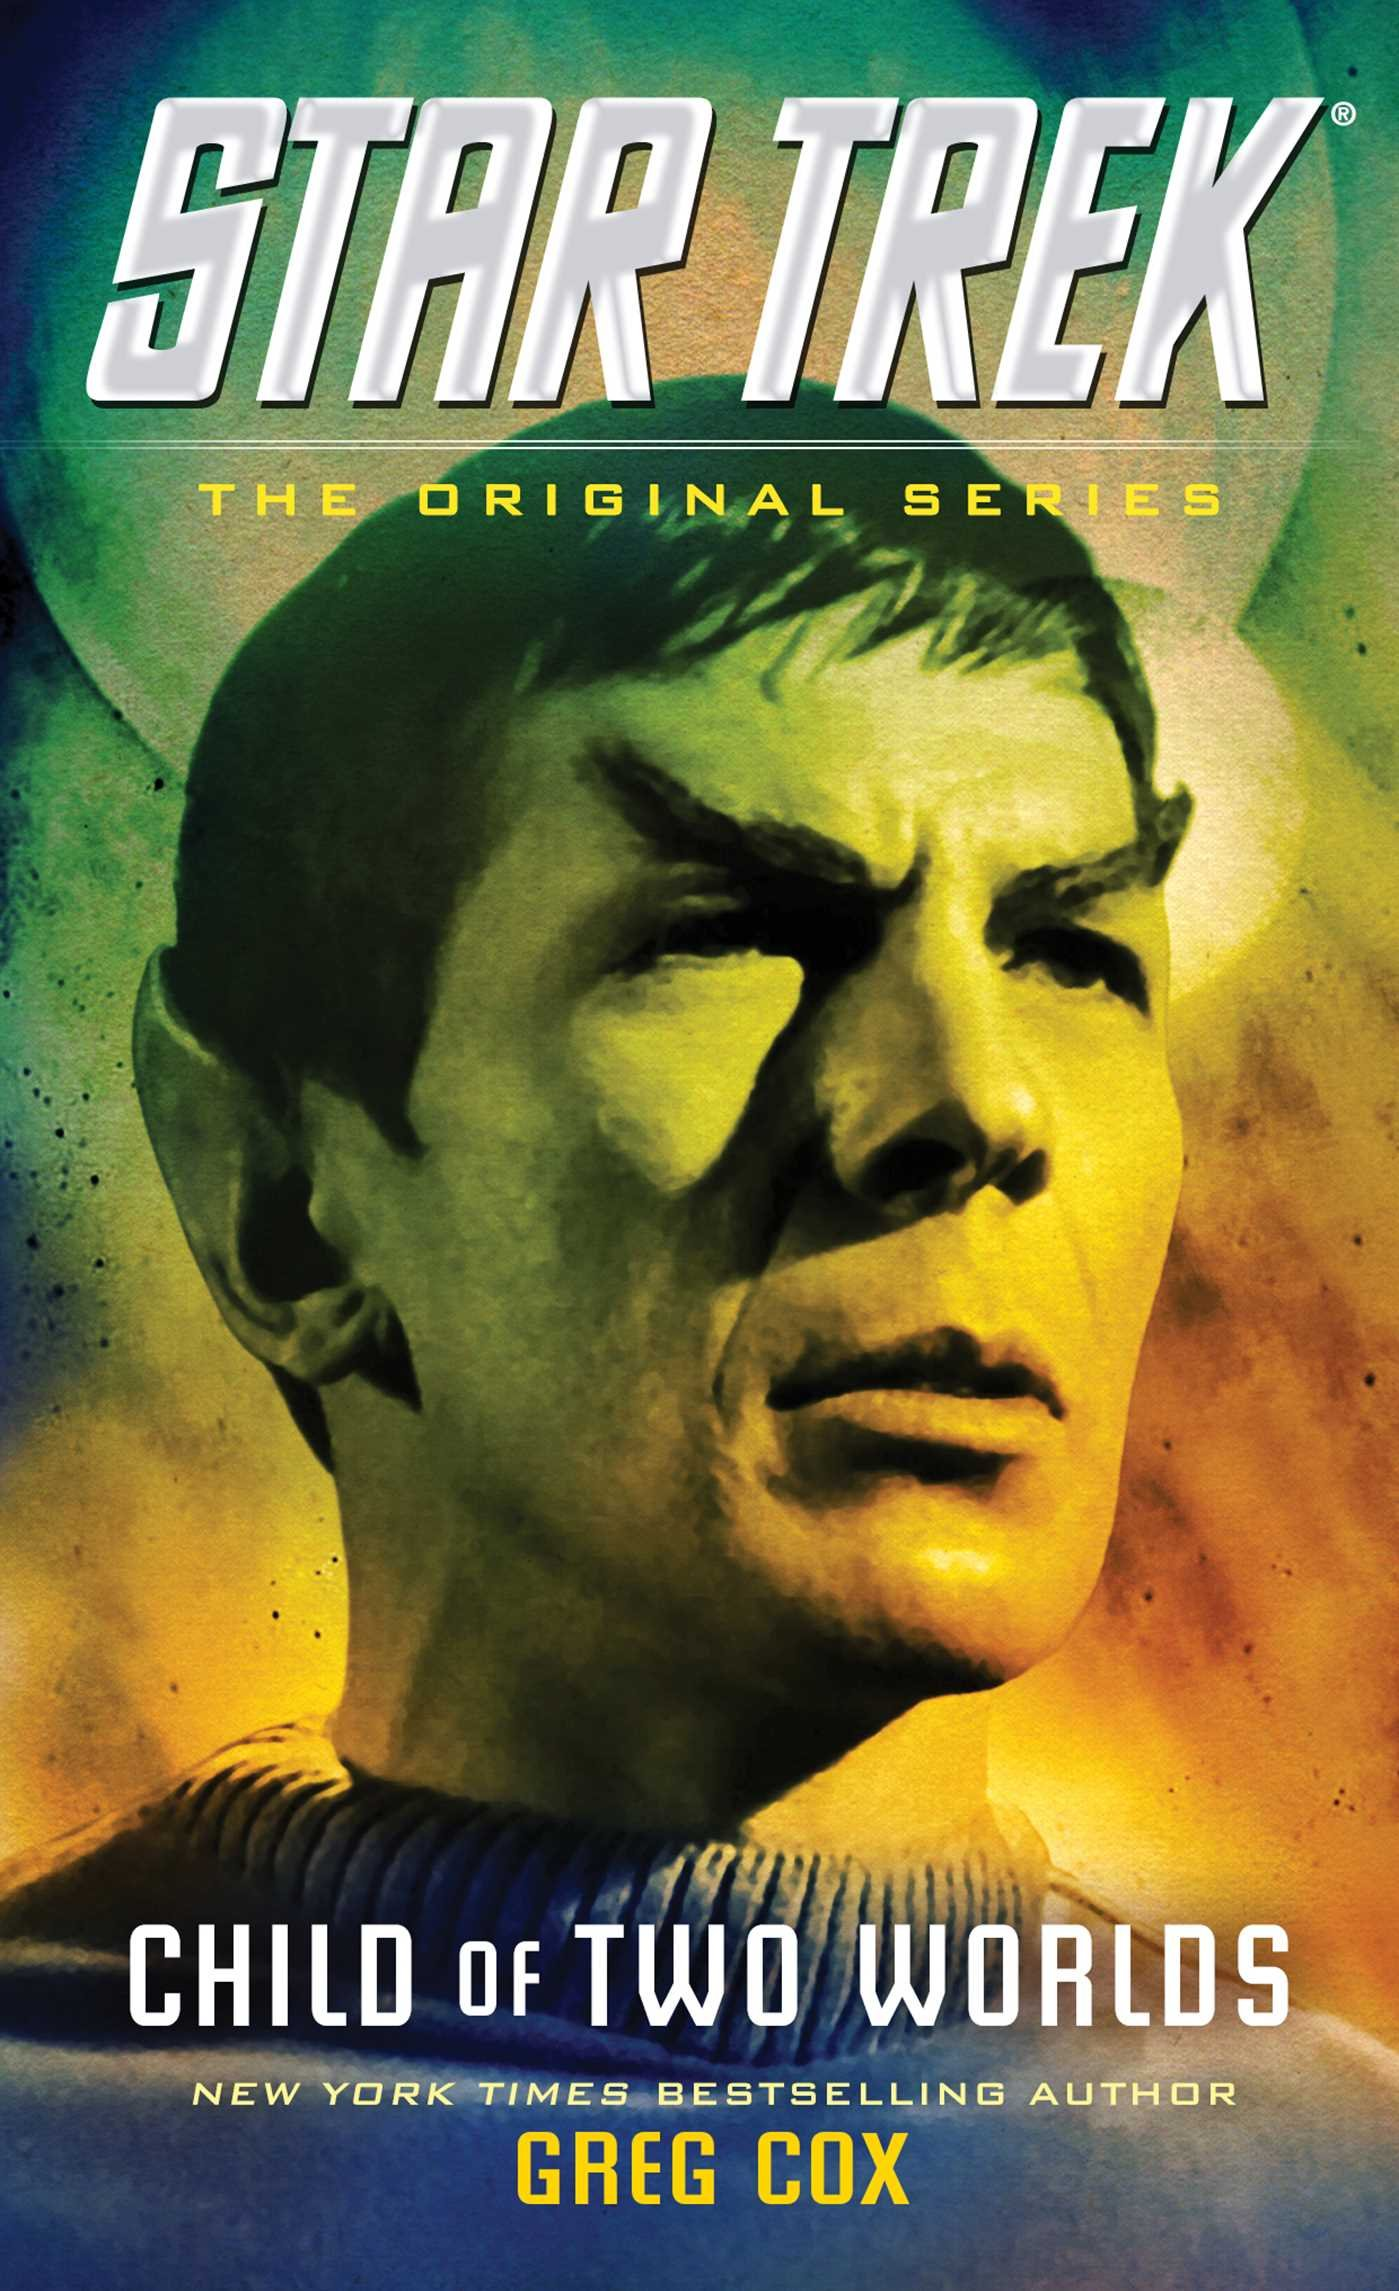 """""""Star Trek: The Original Series: Child of Two Worlds"""" Review by Motionpicturescomics.com"""